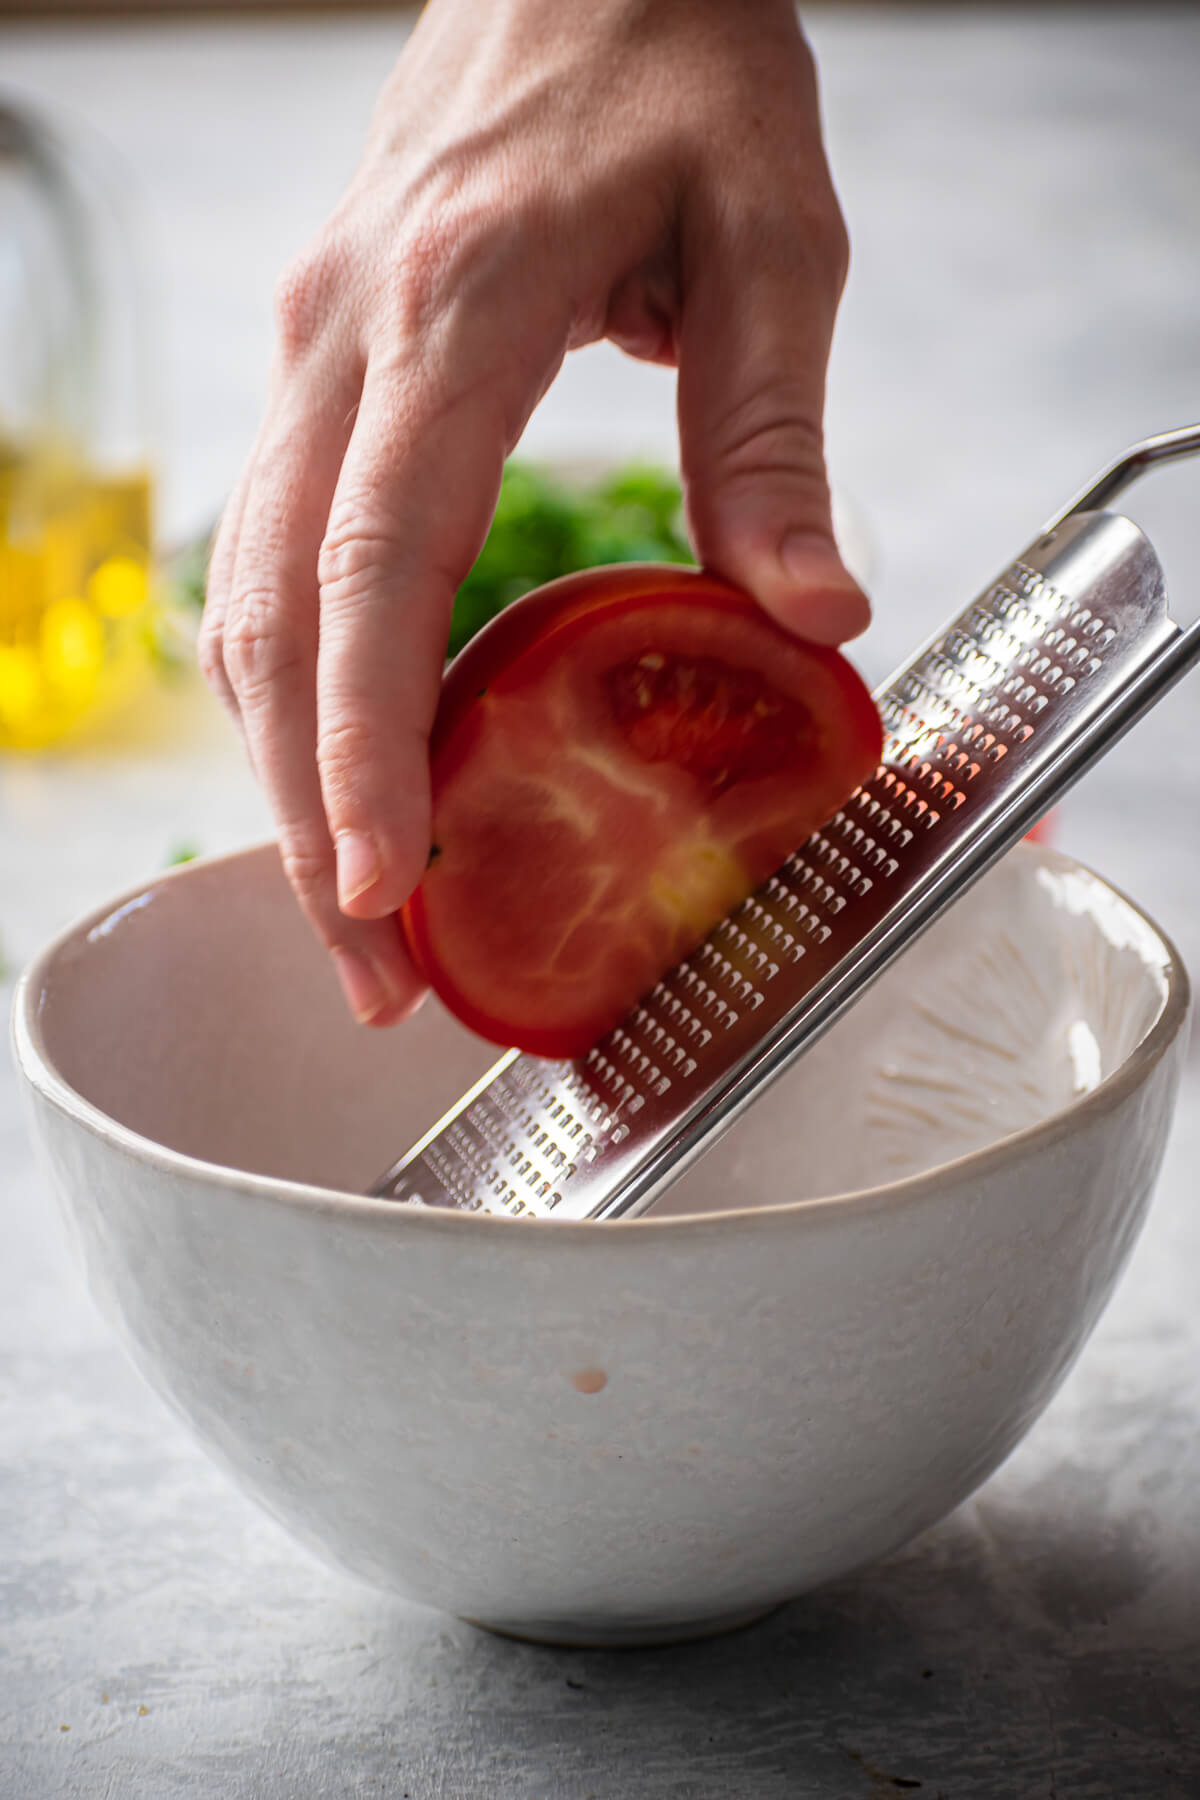 A tomato is grated into a bowl.